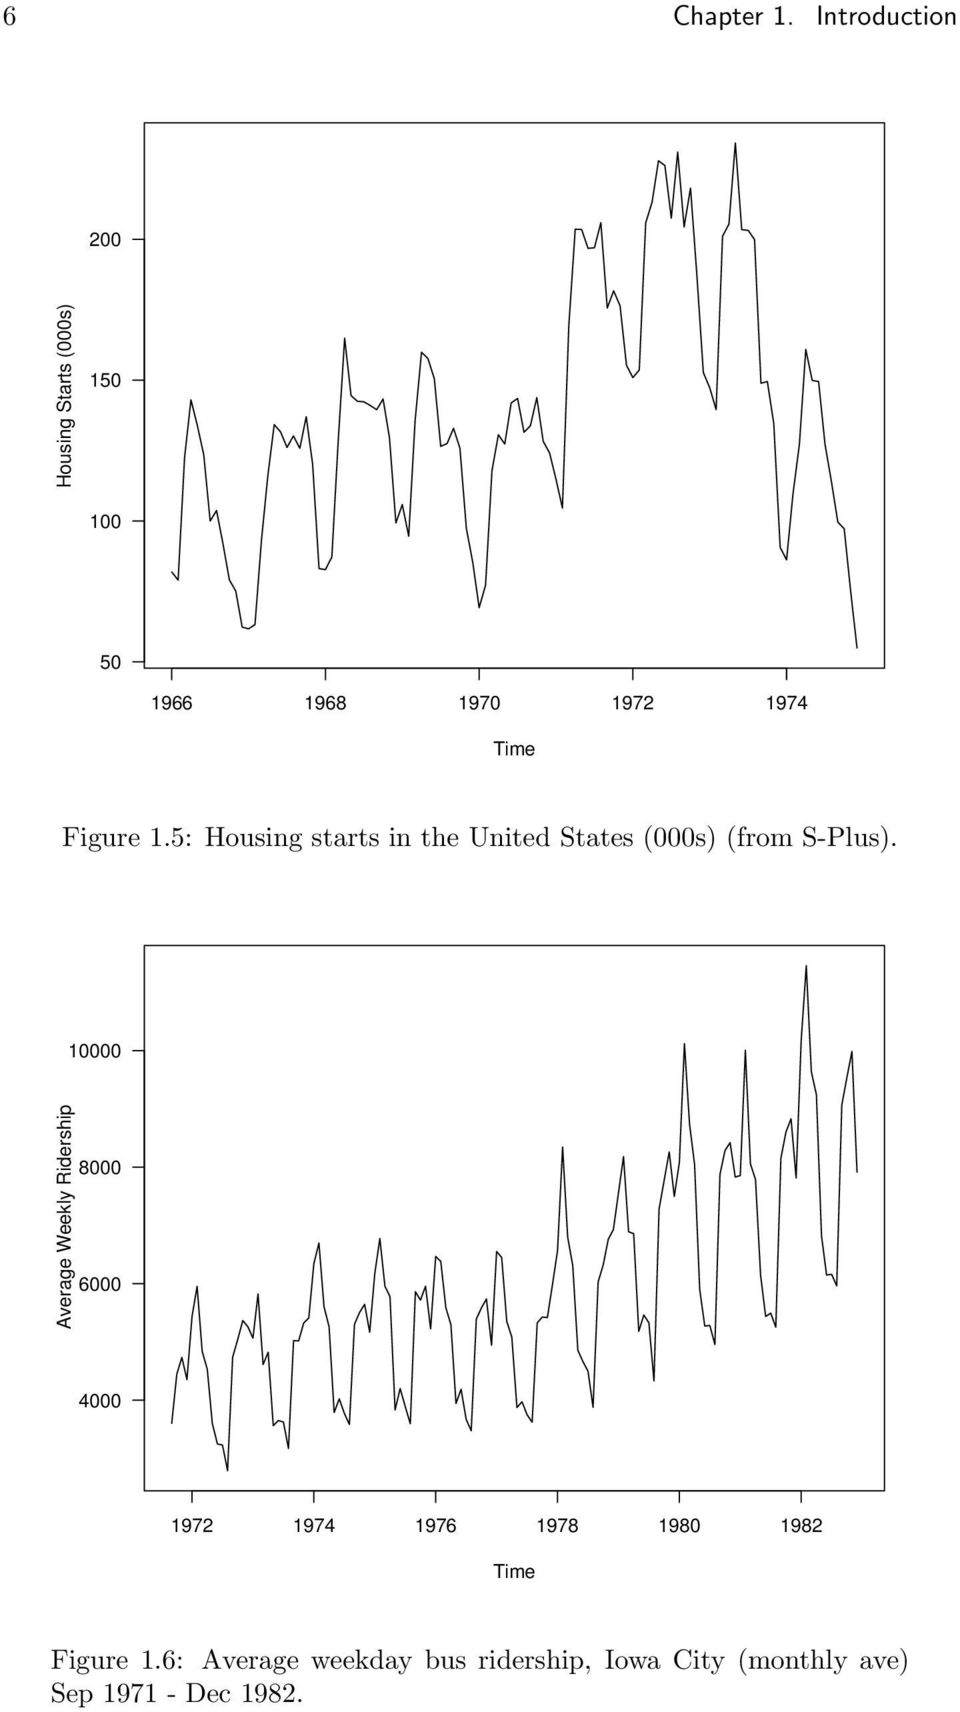 Figure 1.5: Housing starts in the United States (000s) (from S-Plus).